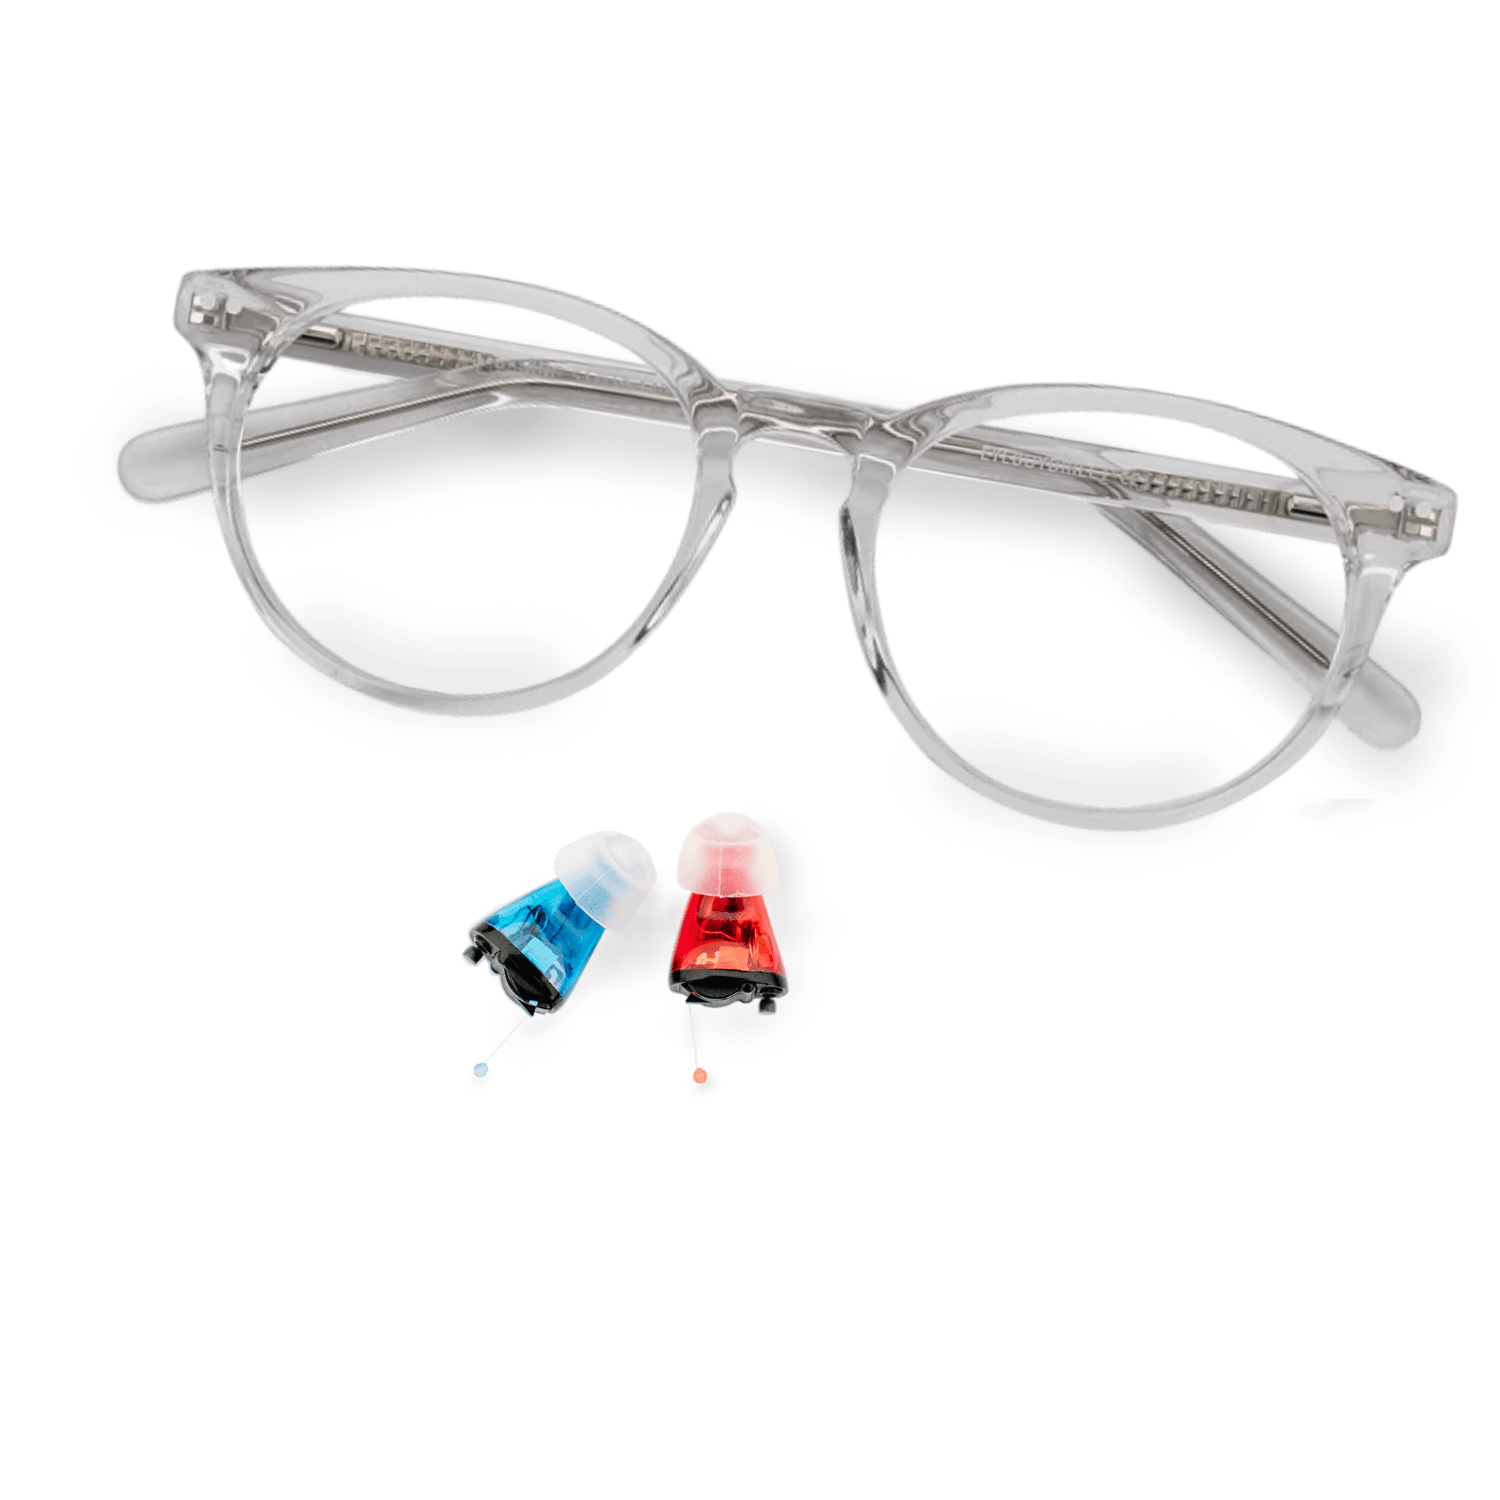 The Aura with glasses